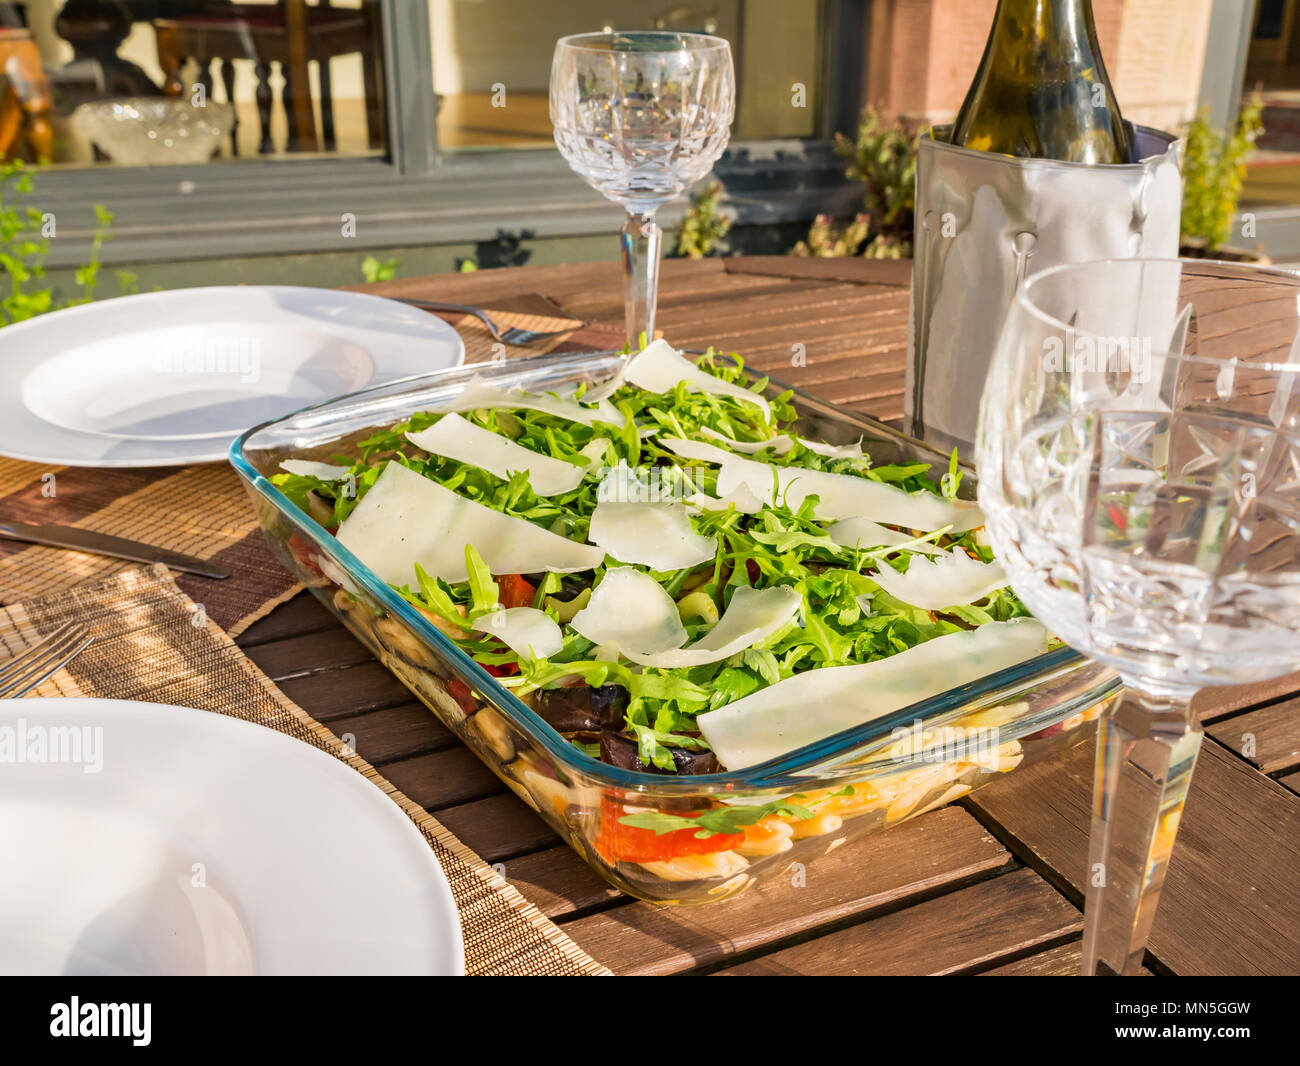 outdoor-table-in-sunshine-with-pasta-sal